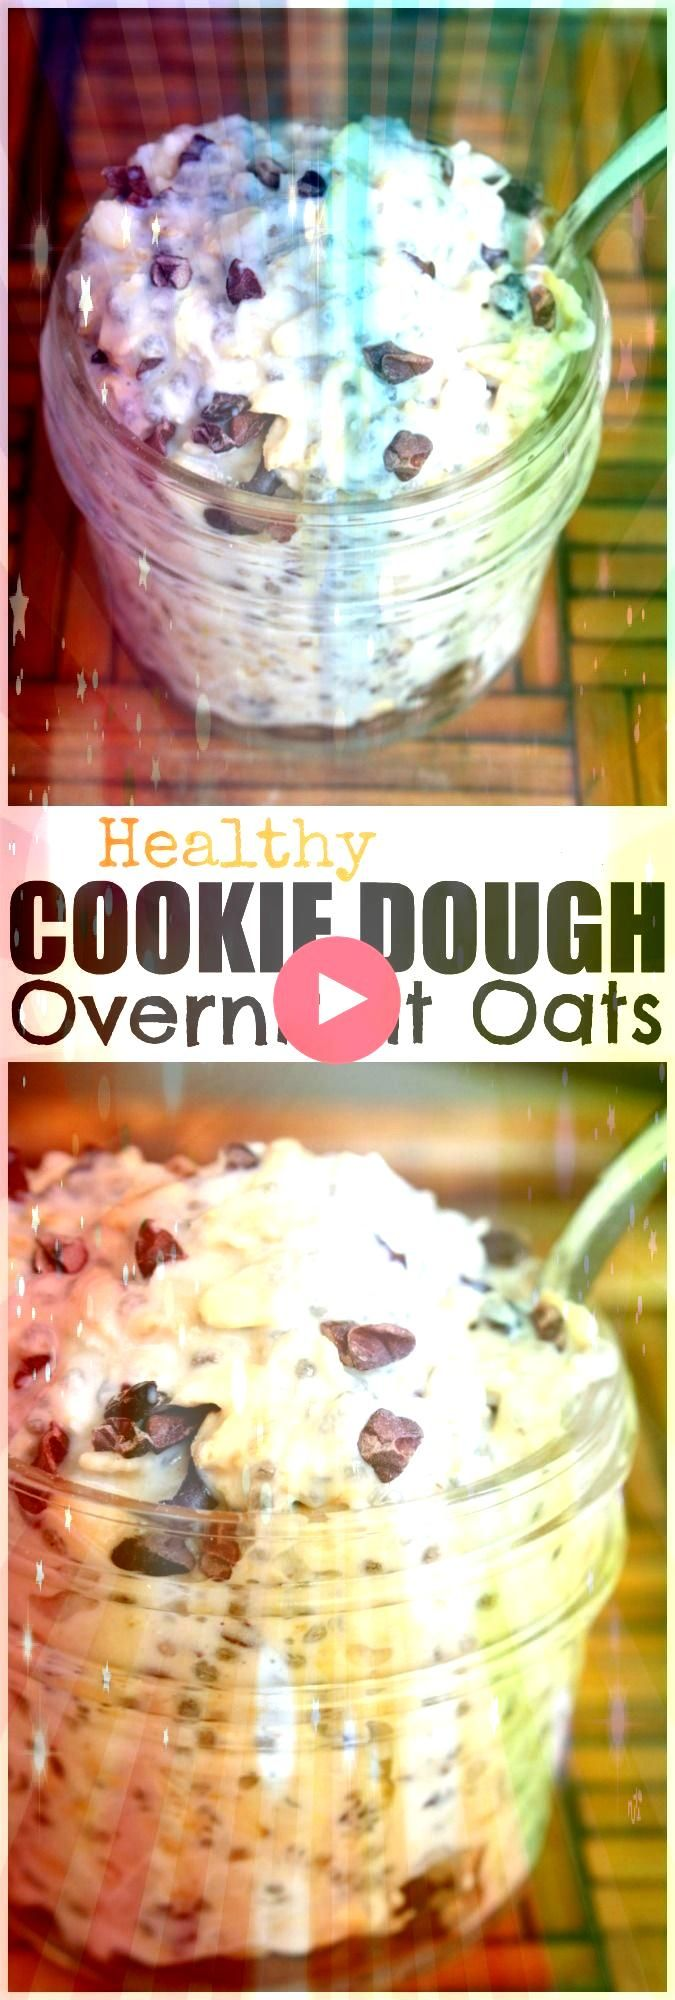 Cookie Dough Overnight Oats I have such a sweet tooth and rarely have s  EAT HEALTHY Cookie Dough Overnight Oats I have such a sweet tooth and rarely have s  EAT  This ea...